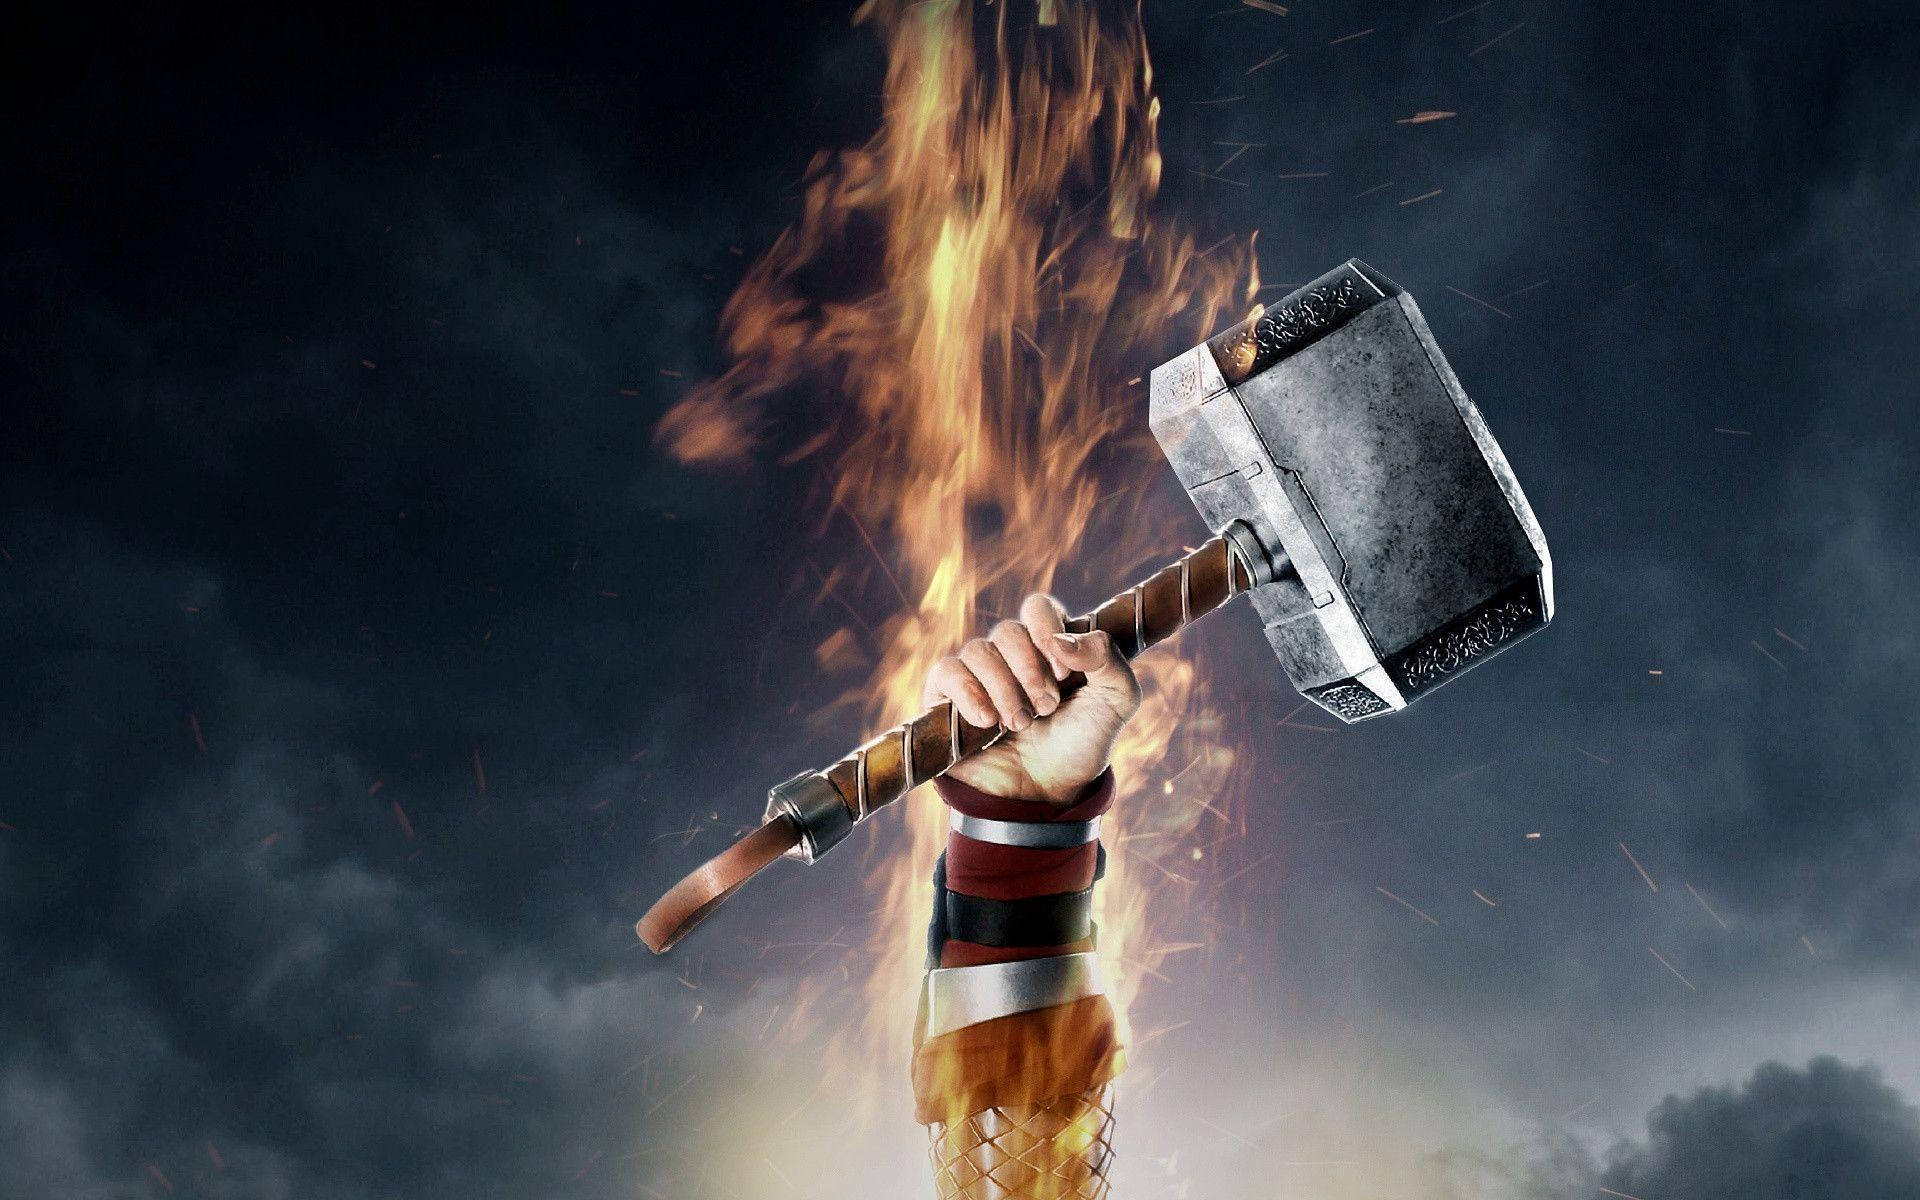 Hd wallpaper thor - Wallpapers Tagged With Thor Thor Hd Wallpapers Page 1